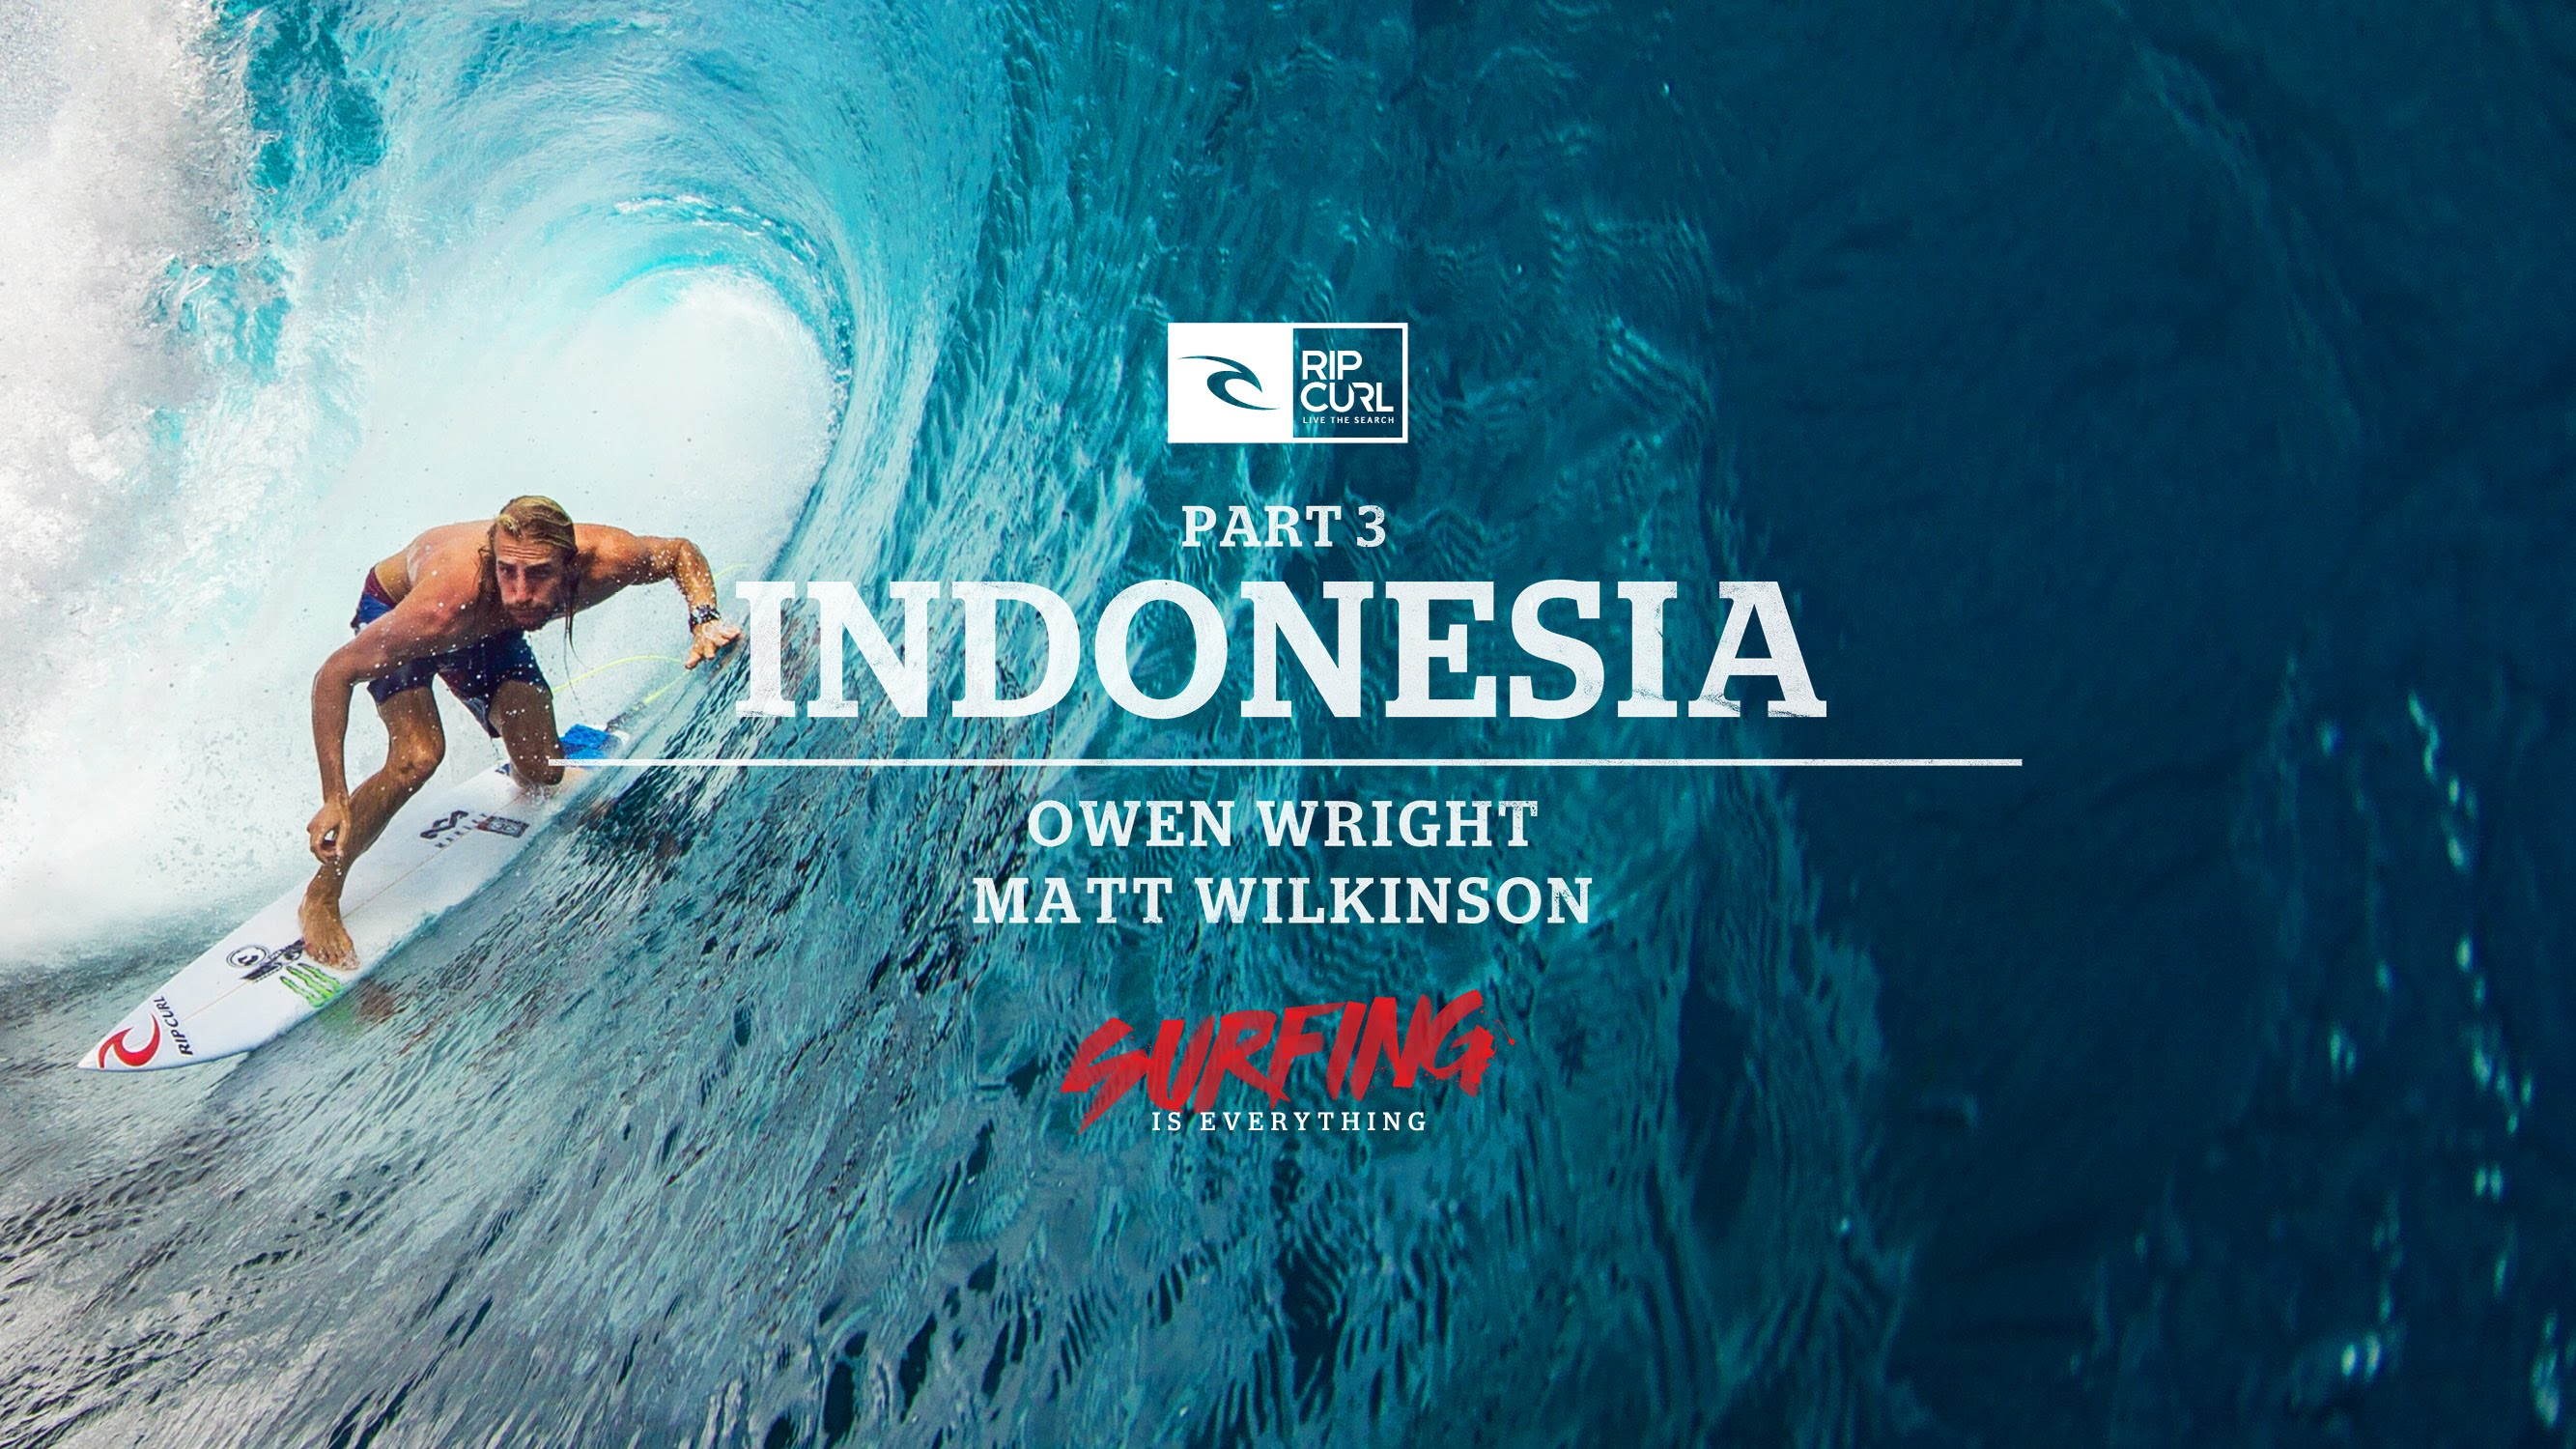 Surfing is Everything – Part 3 Indonesia by Rip Curl